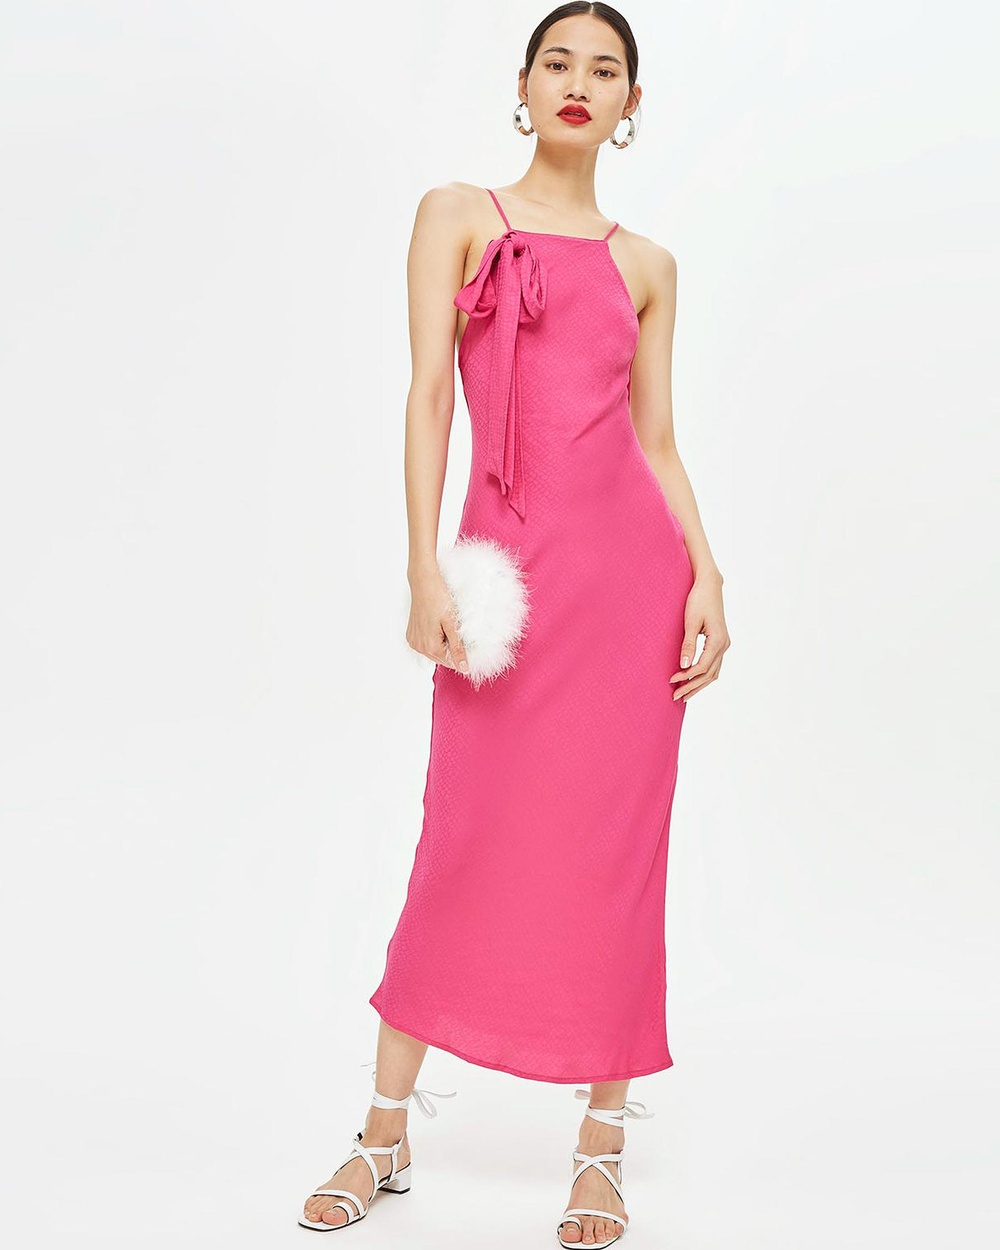 TOPSHOP Jacquard Bow Slip Midi Dress Dresses Bright Pink Jacquard Bow Slip Midi Dress